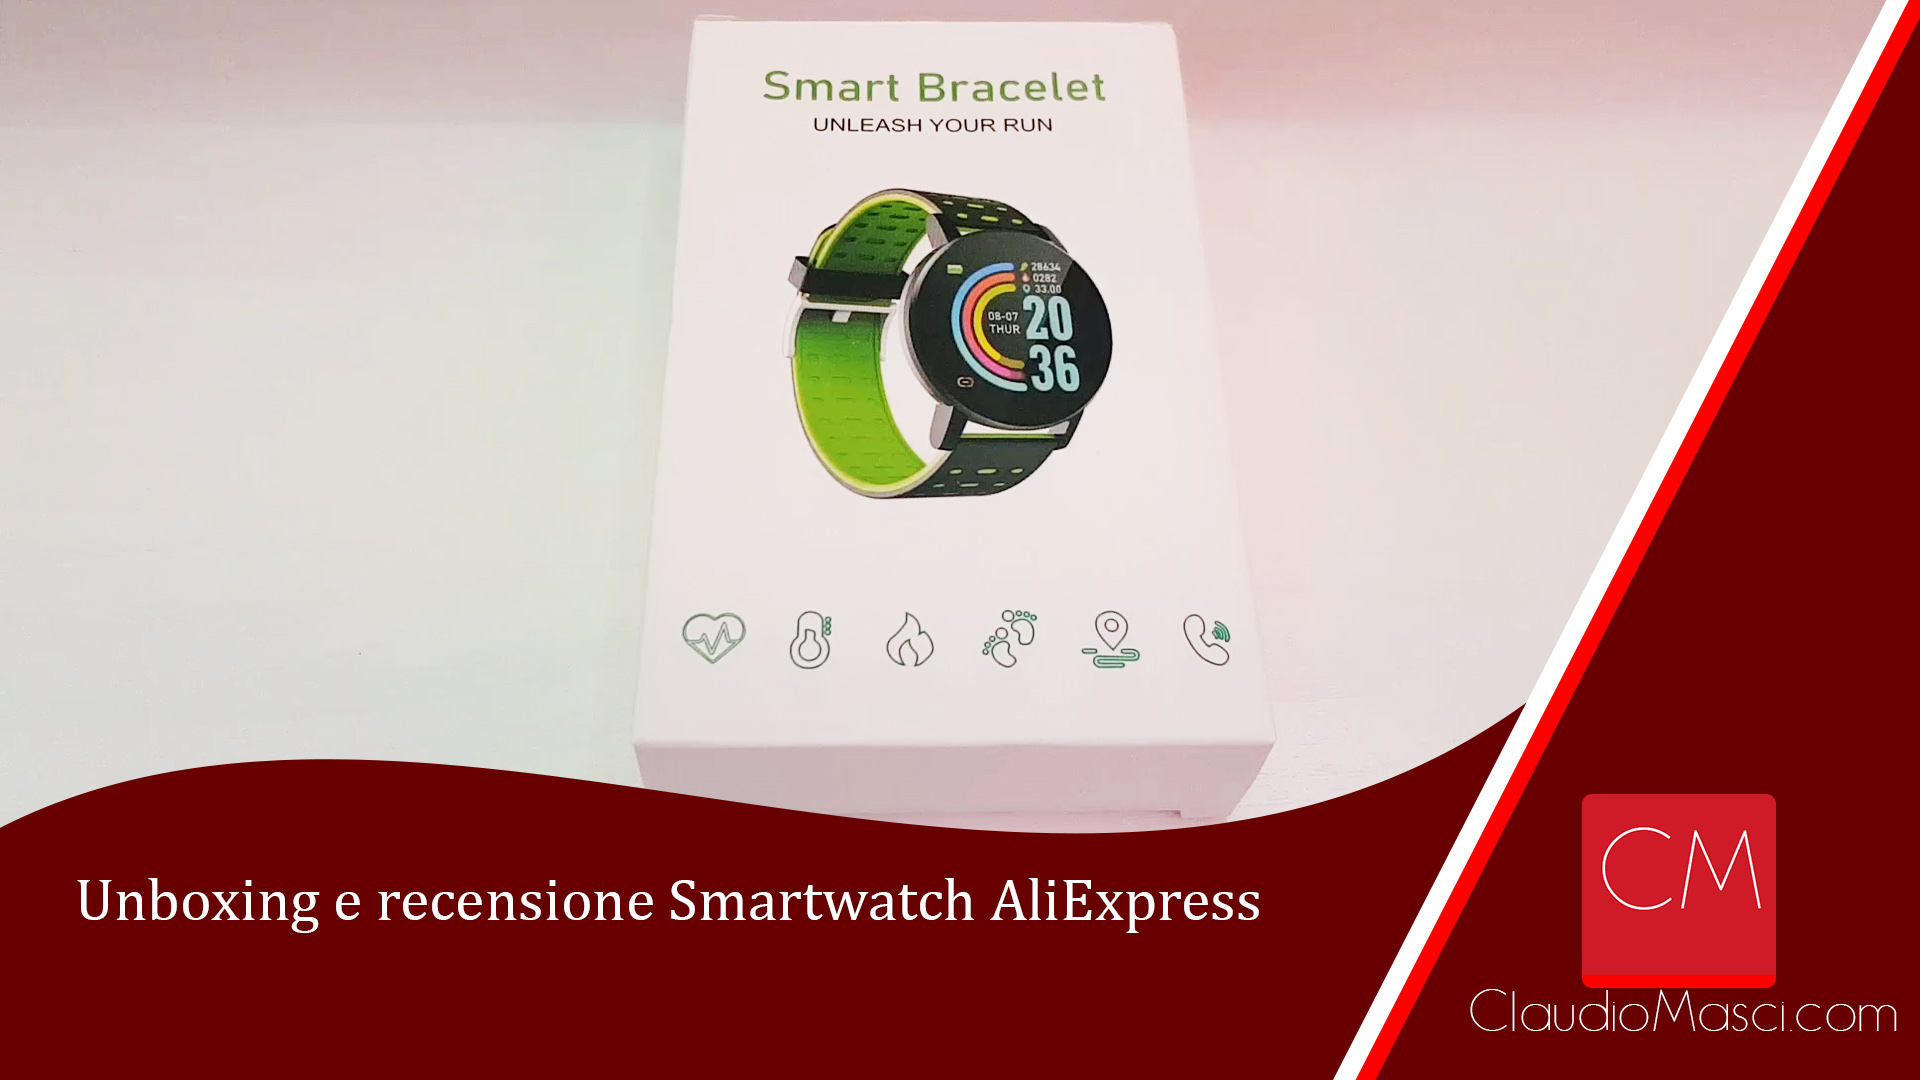 Unboxing e recensione Smartwatch AliExpress